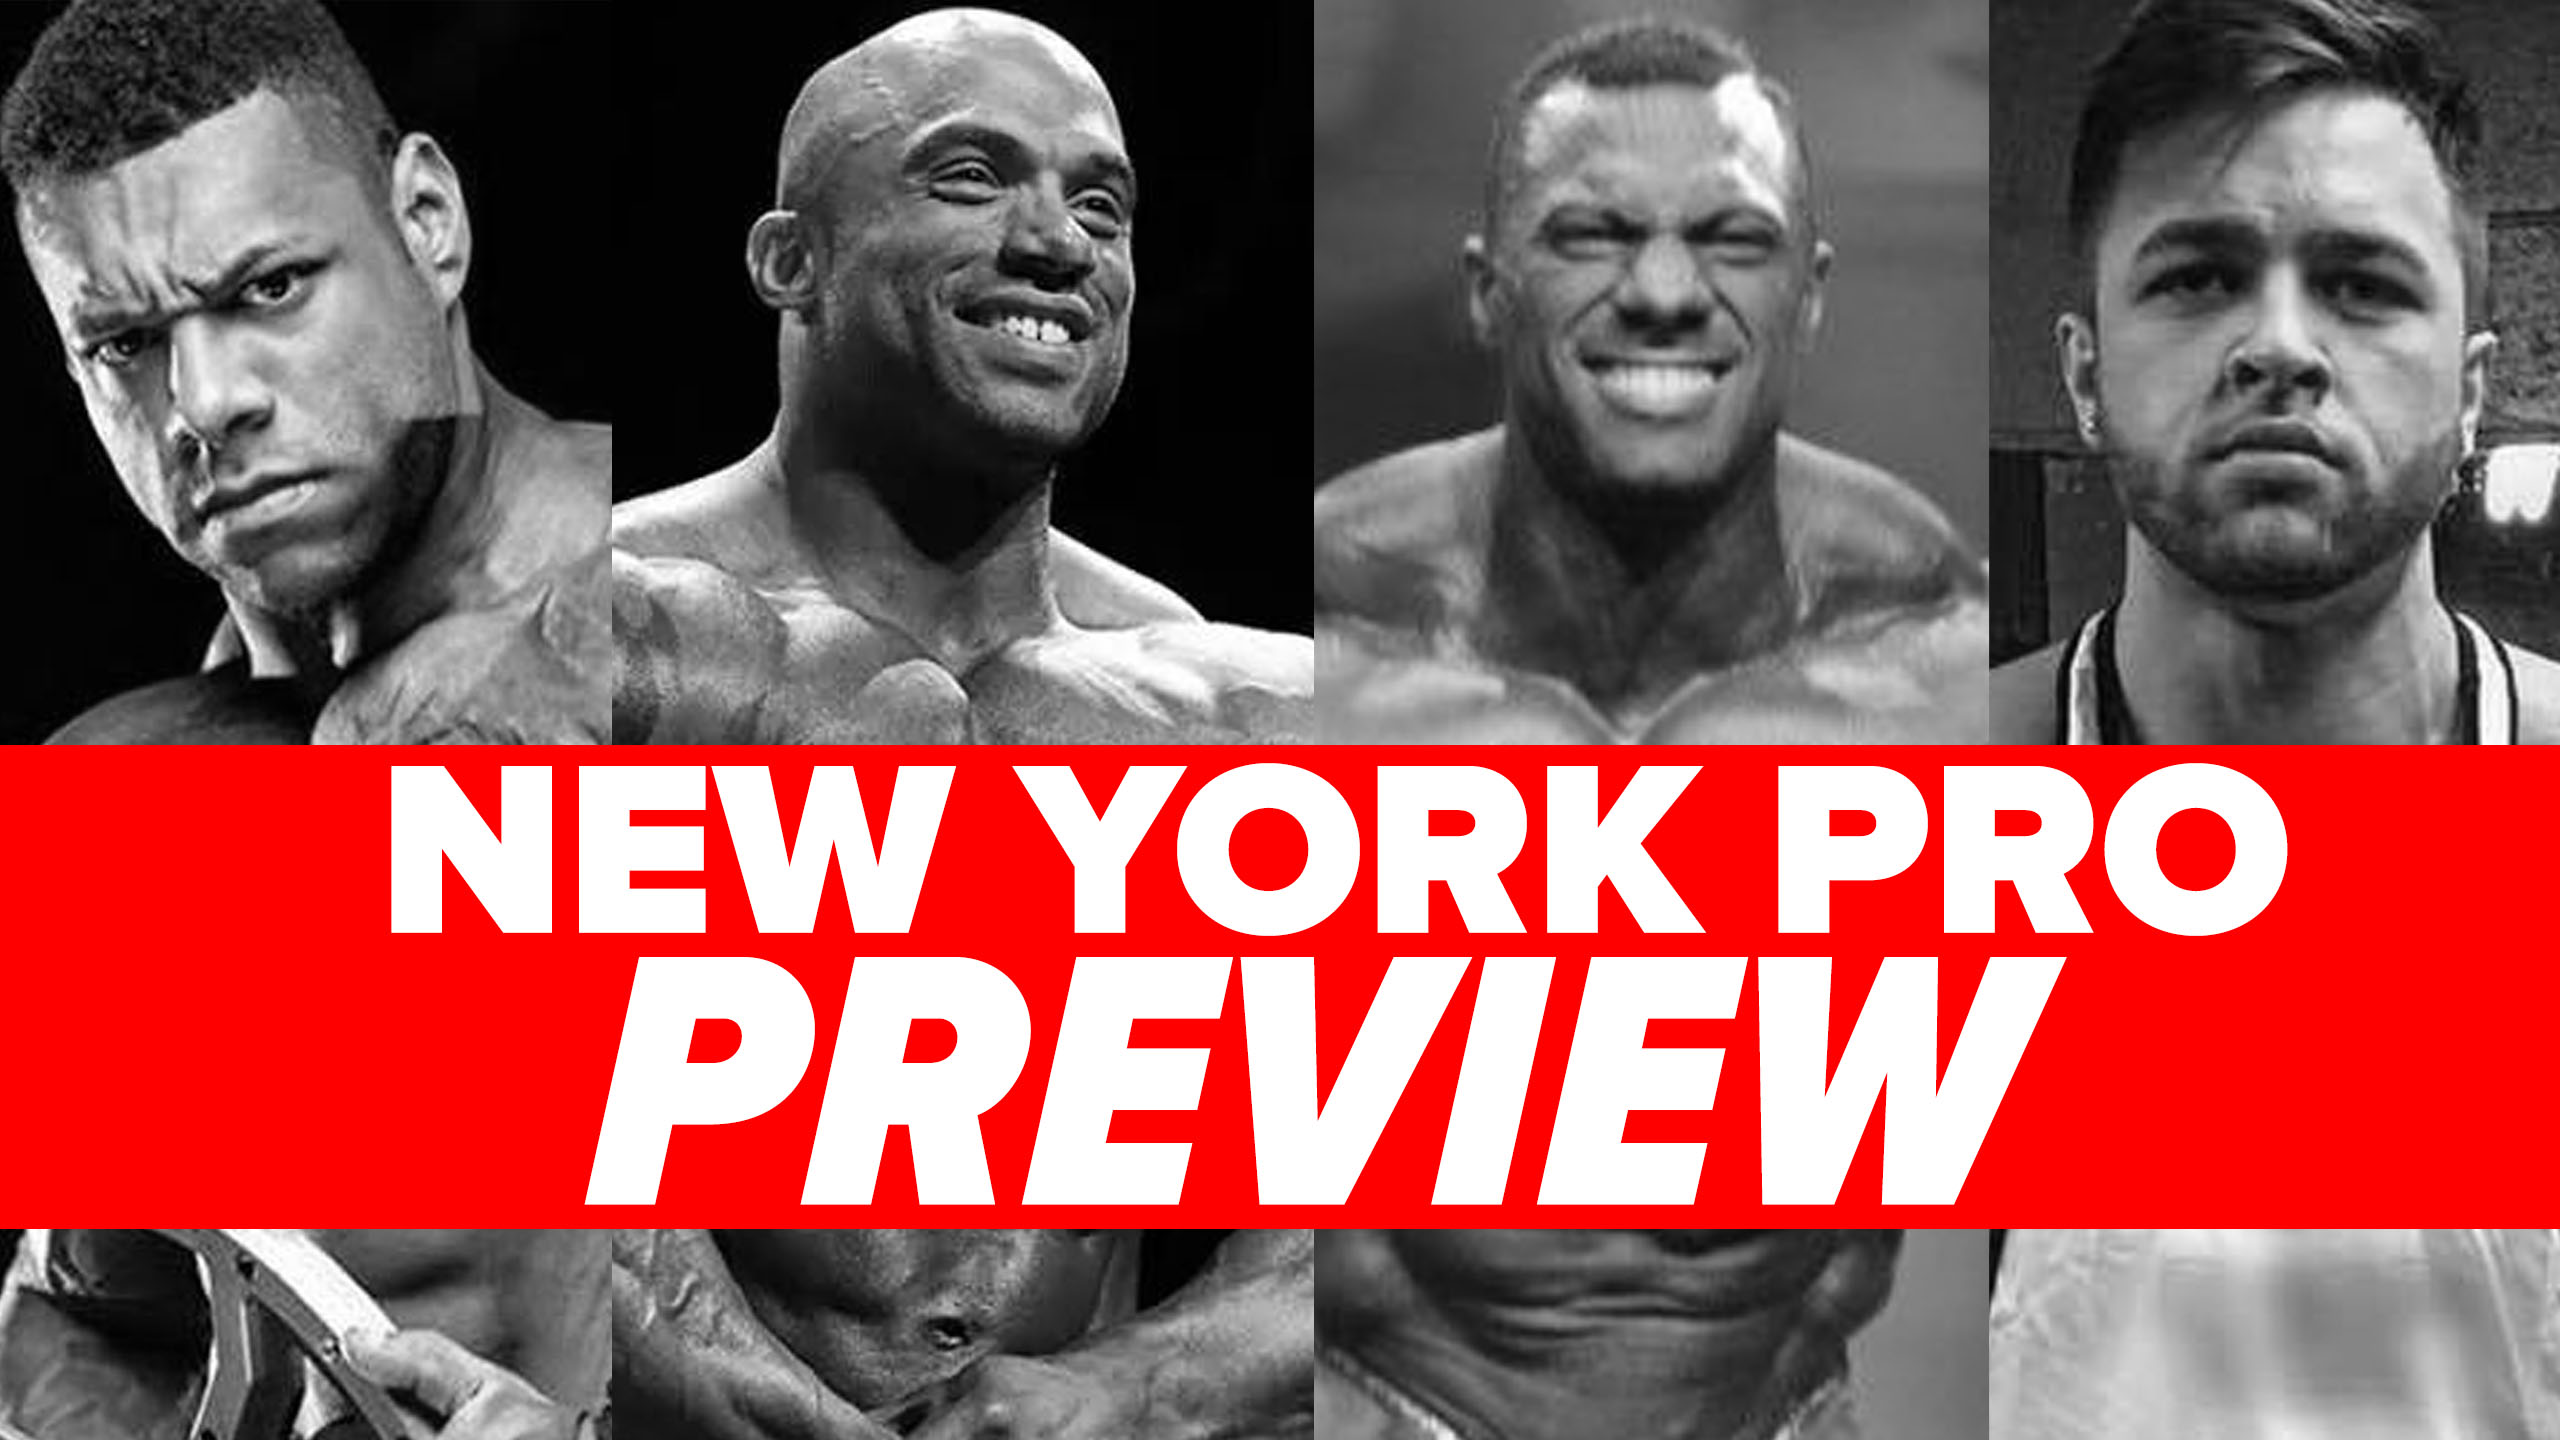 new york pro preview